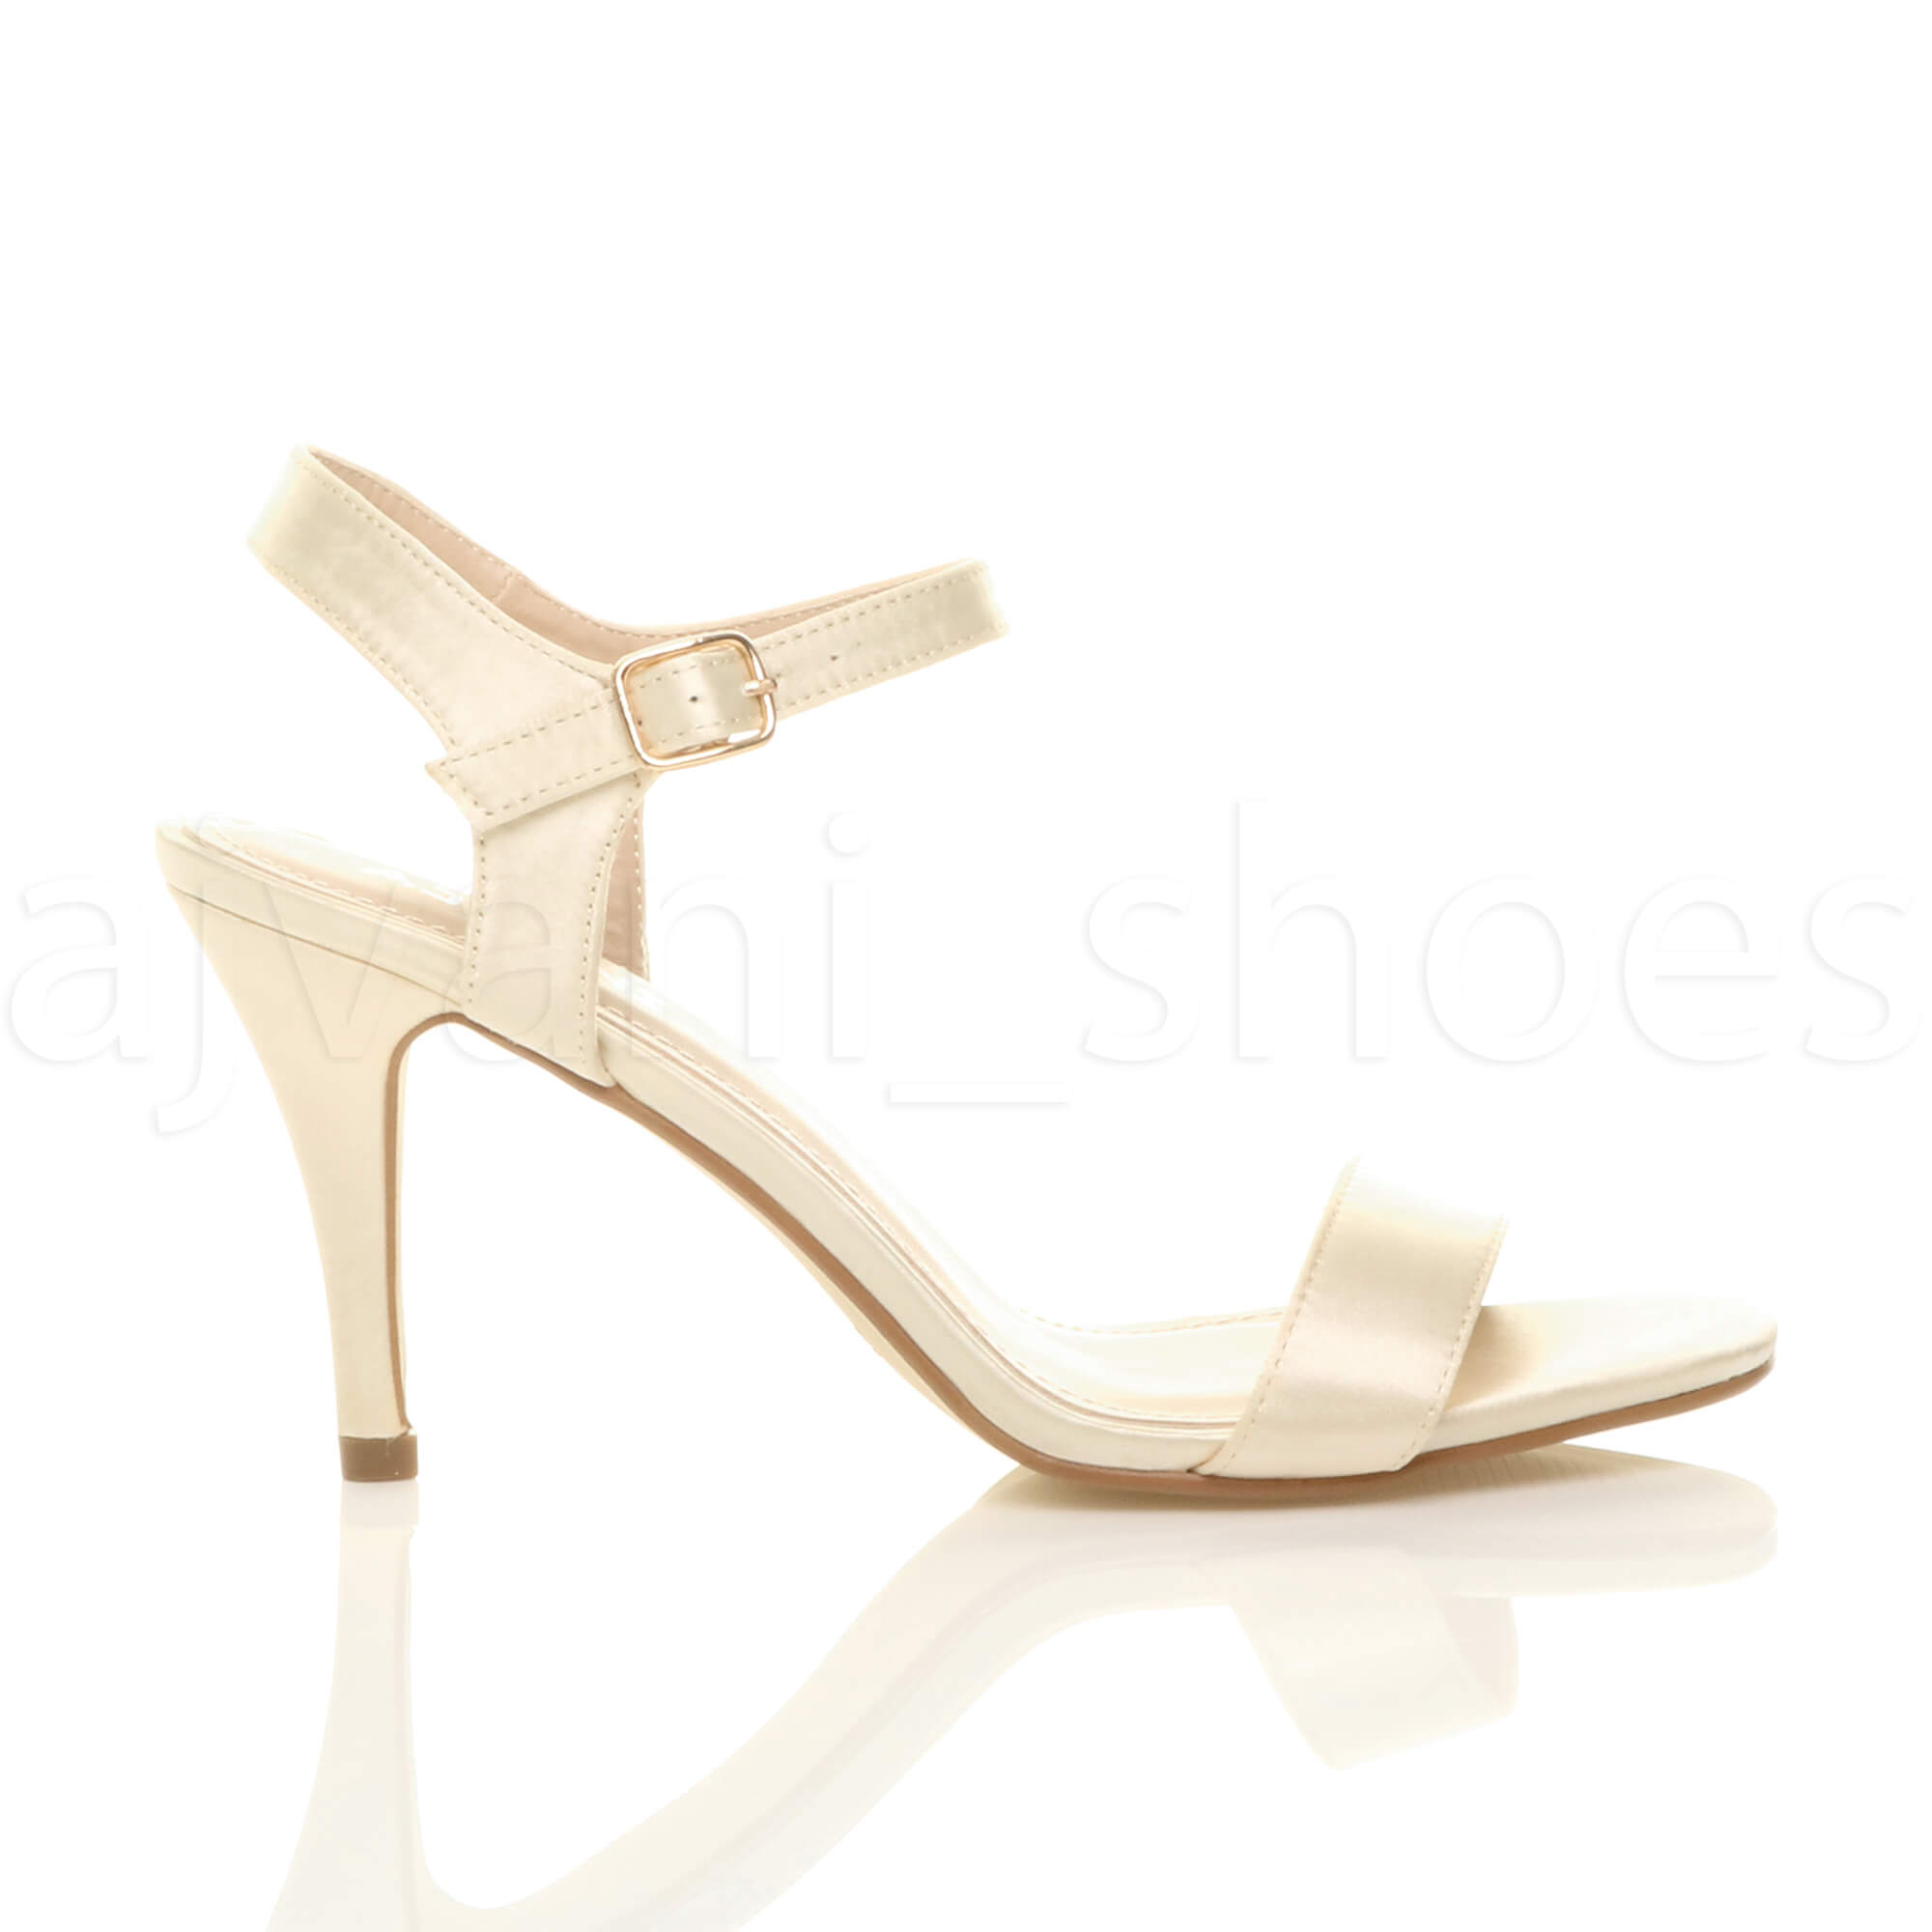 WOMENS-LADIES-HIGH-HEEL-BUCKLE-STRAPPY-BASIC-BARELY-THERE-SANDALS-SHOES-SIZE thumbnail 52